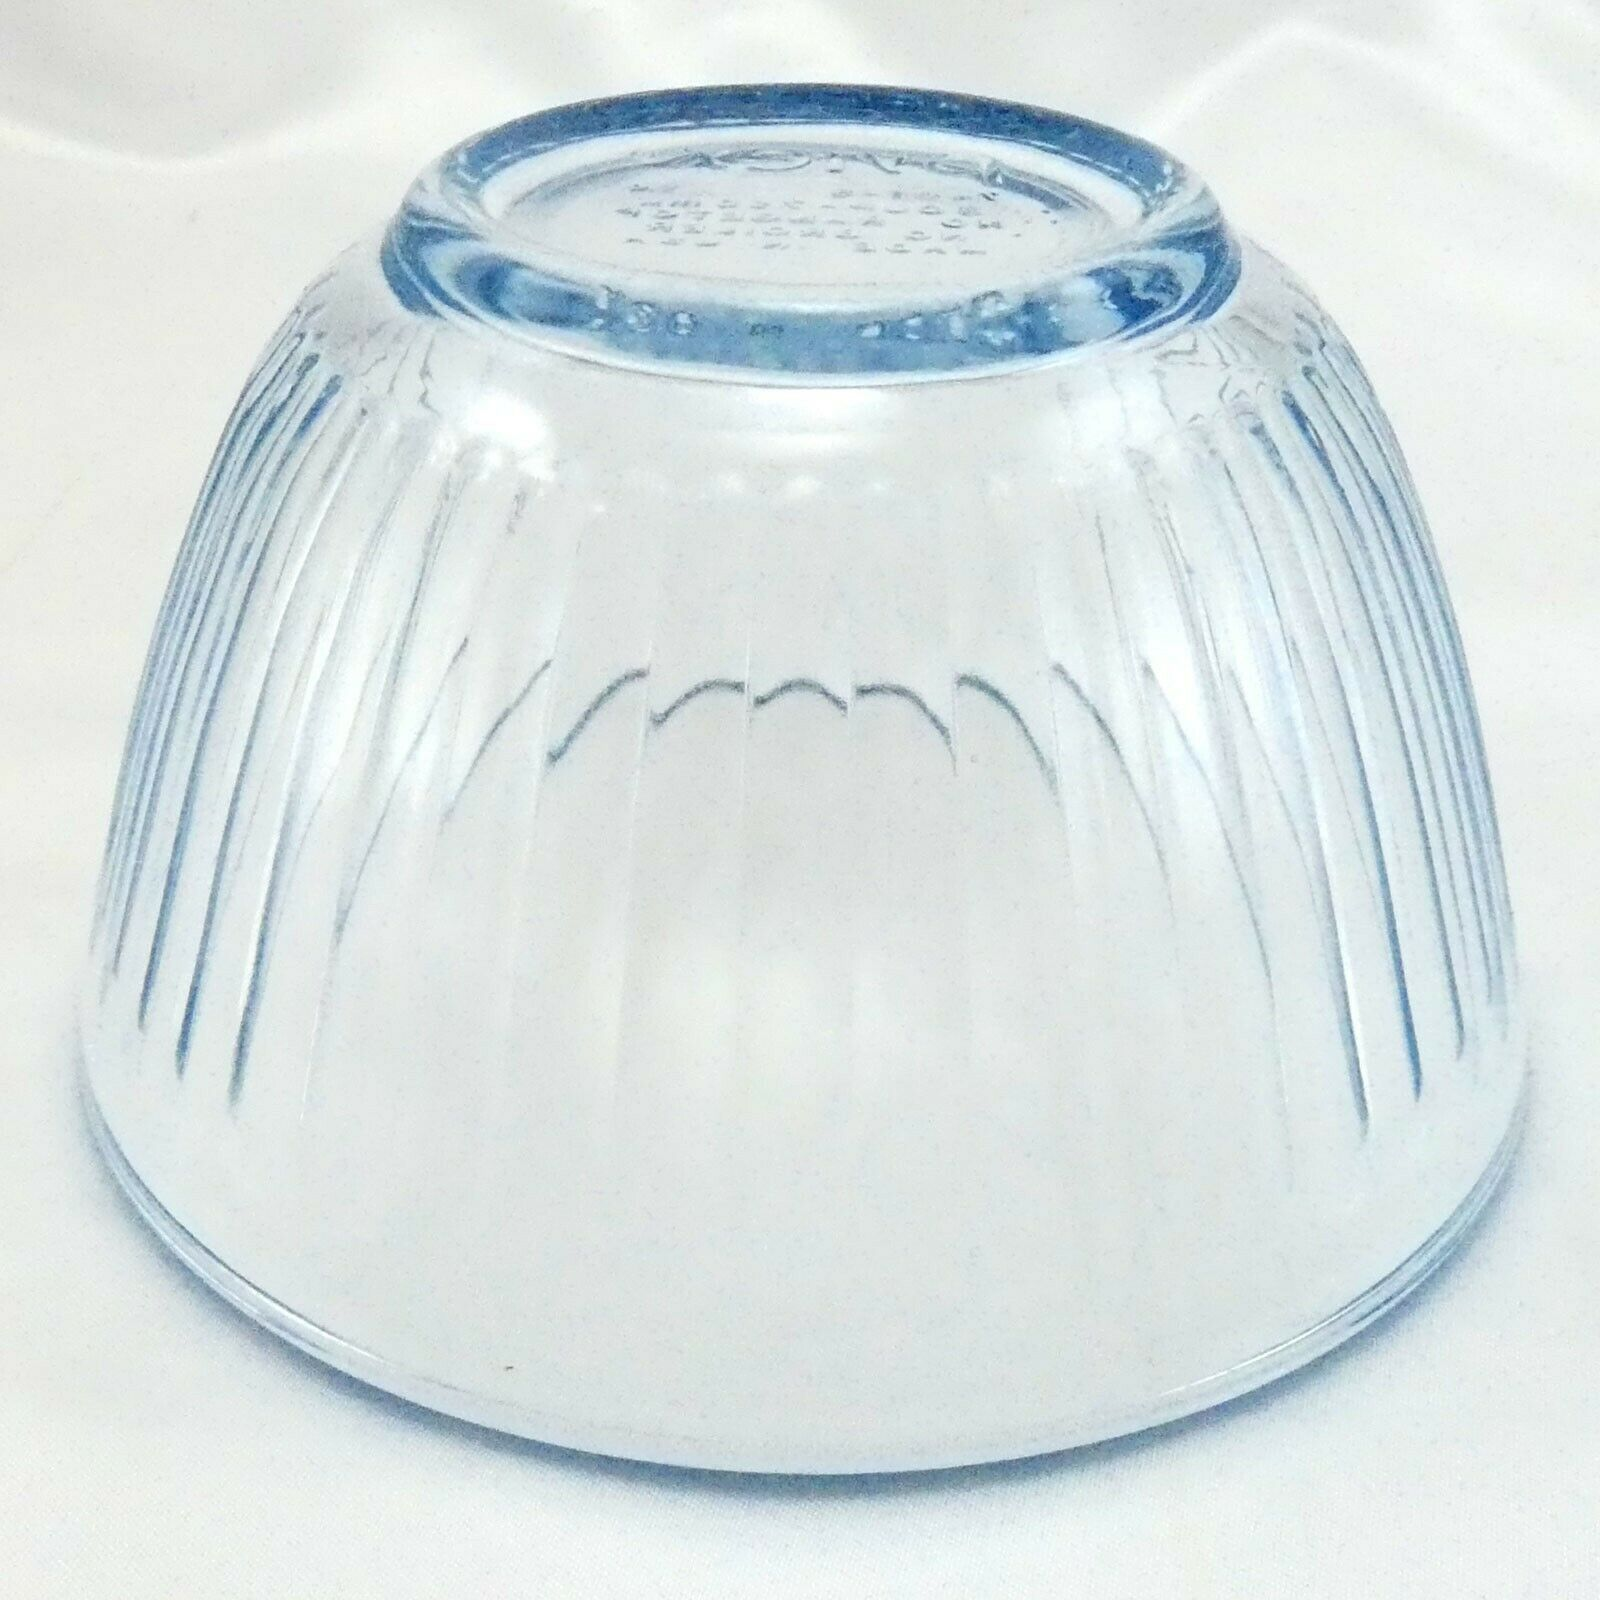 Pyrex 7401-S Ribbed Side Blue Aqua Tint Glass Serving Bowl 3 Cup image 3